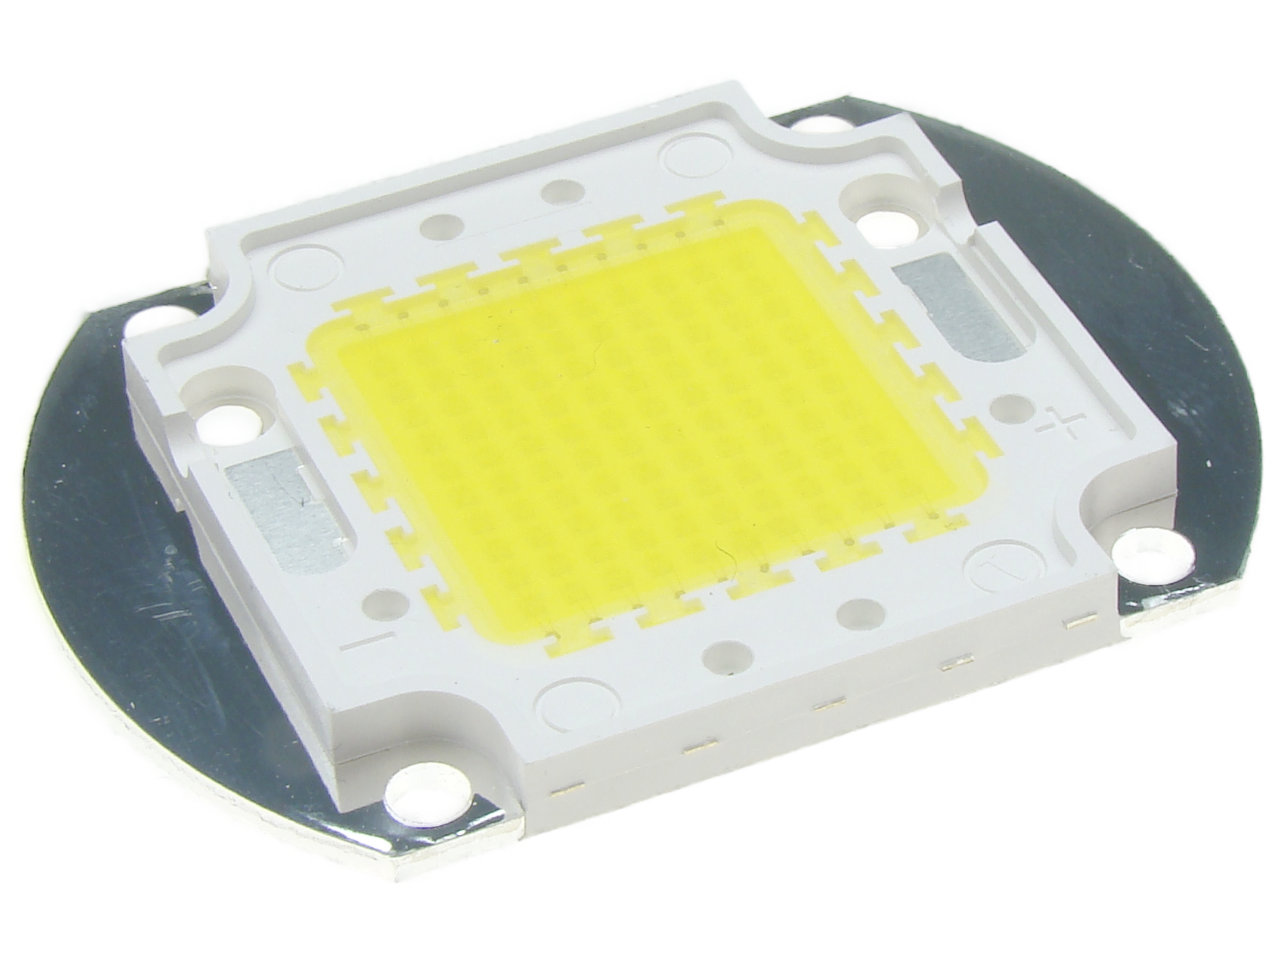 Dioda LED 100W EL-MZ551010;5000K; VF:30-33V;IF:3200mA;9500-10500lm